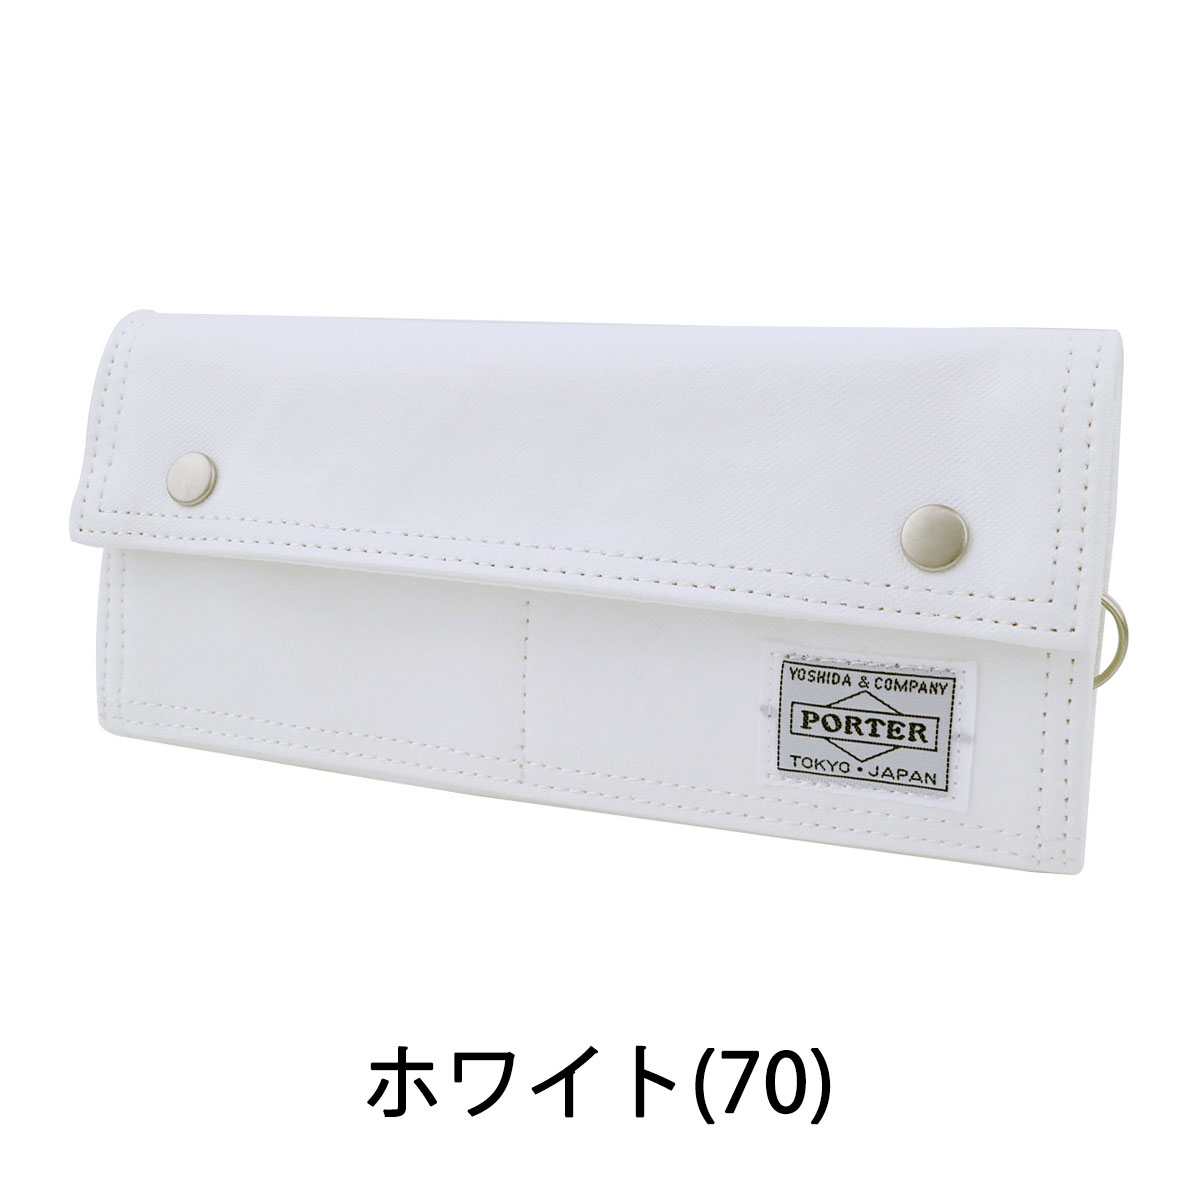 Yoshida Kaban PORTER FREE STYLE Men's Women's Yoshida bags long wallet goods cloth purse wallet 707-08226 Porter bag